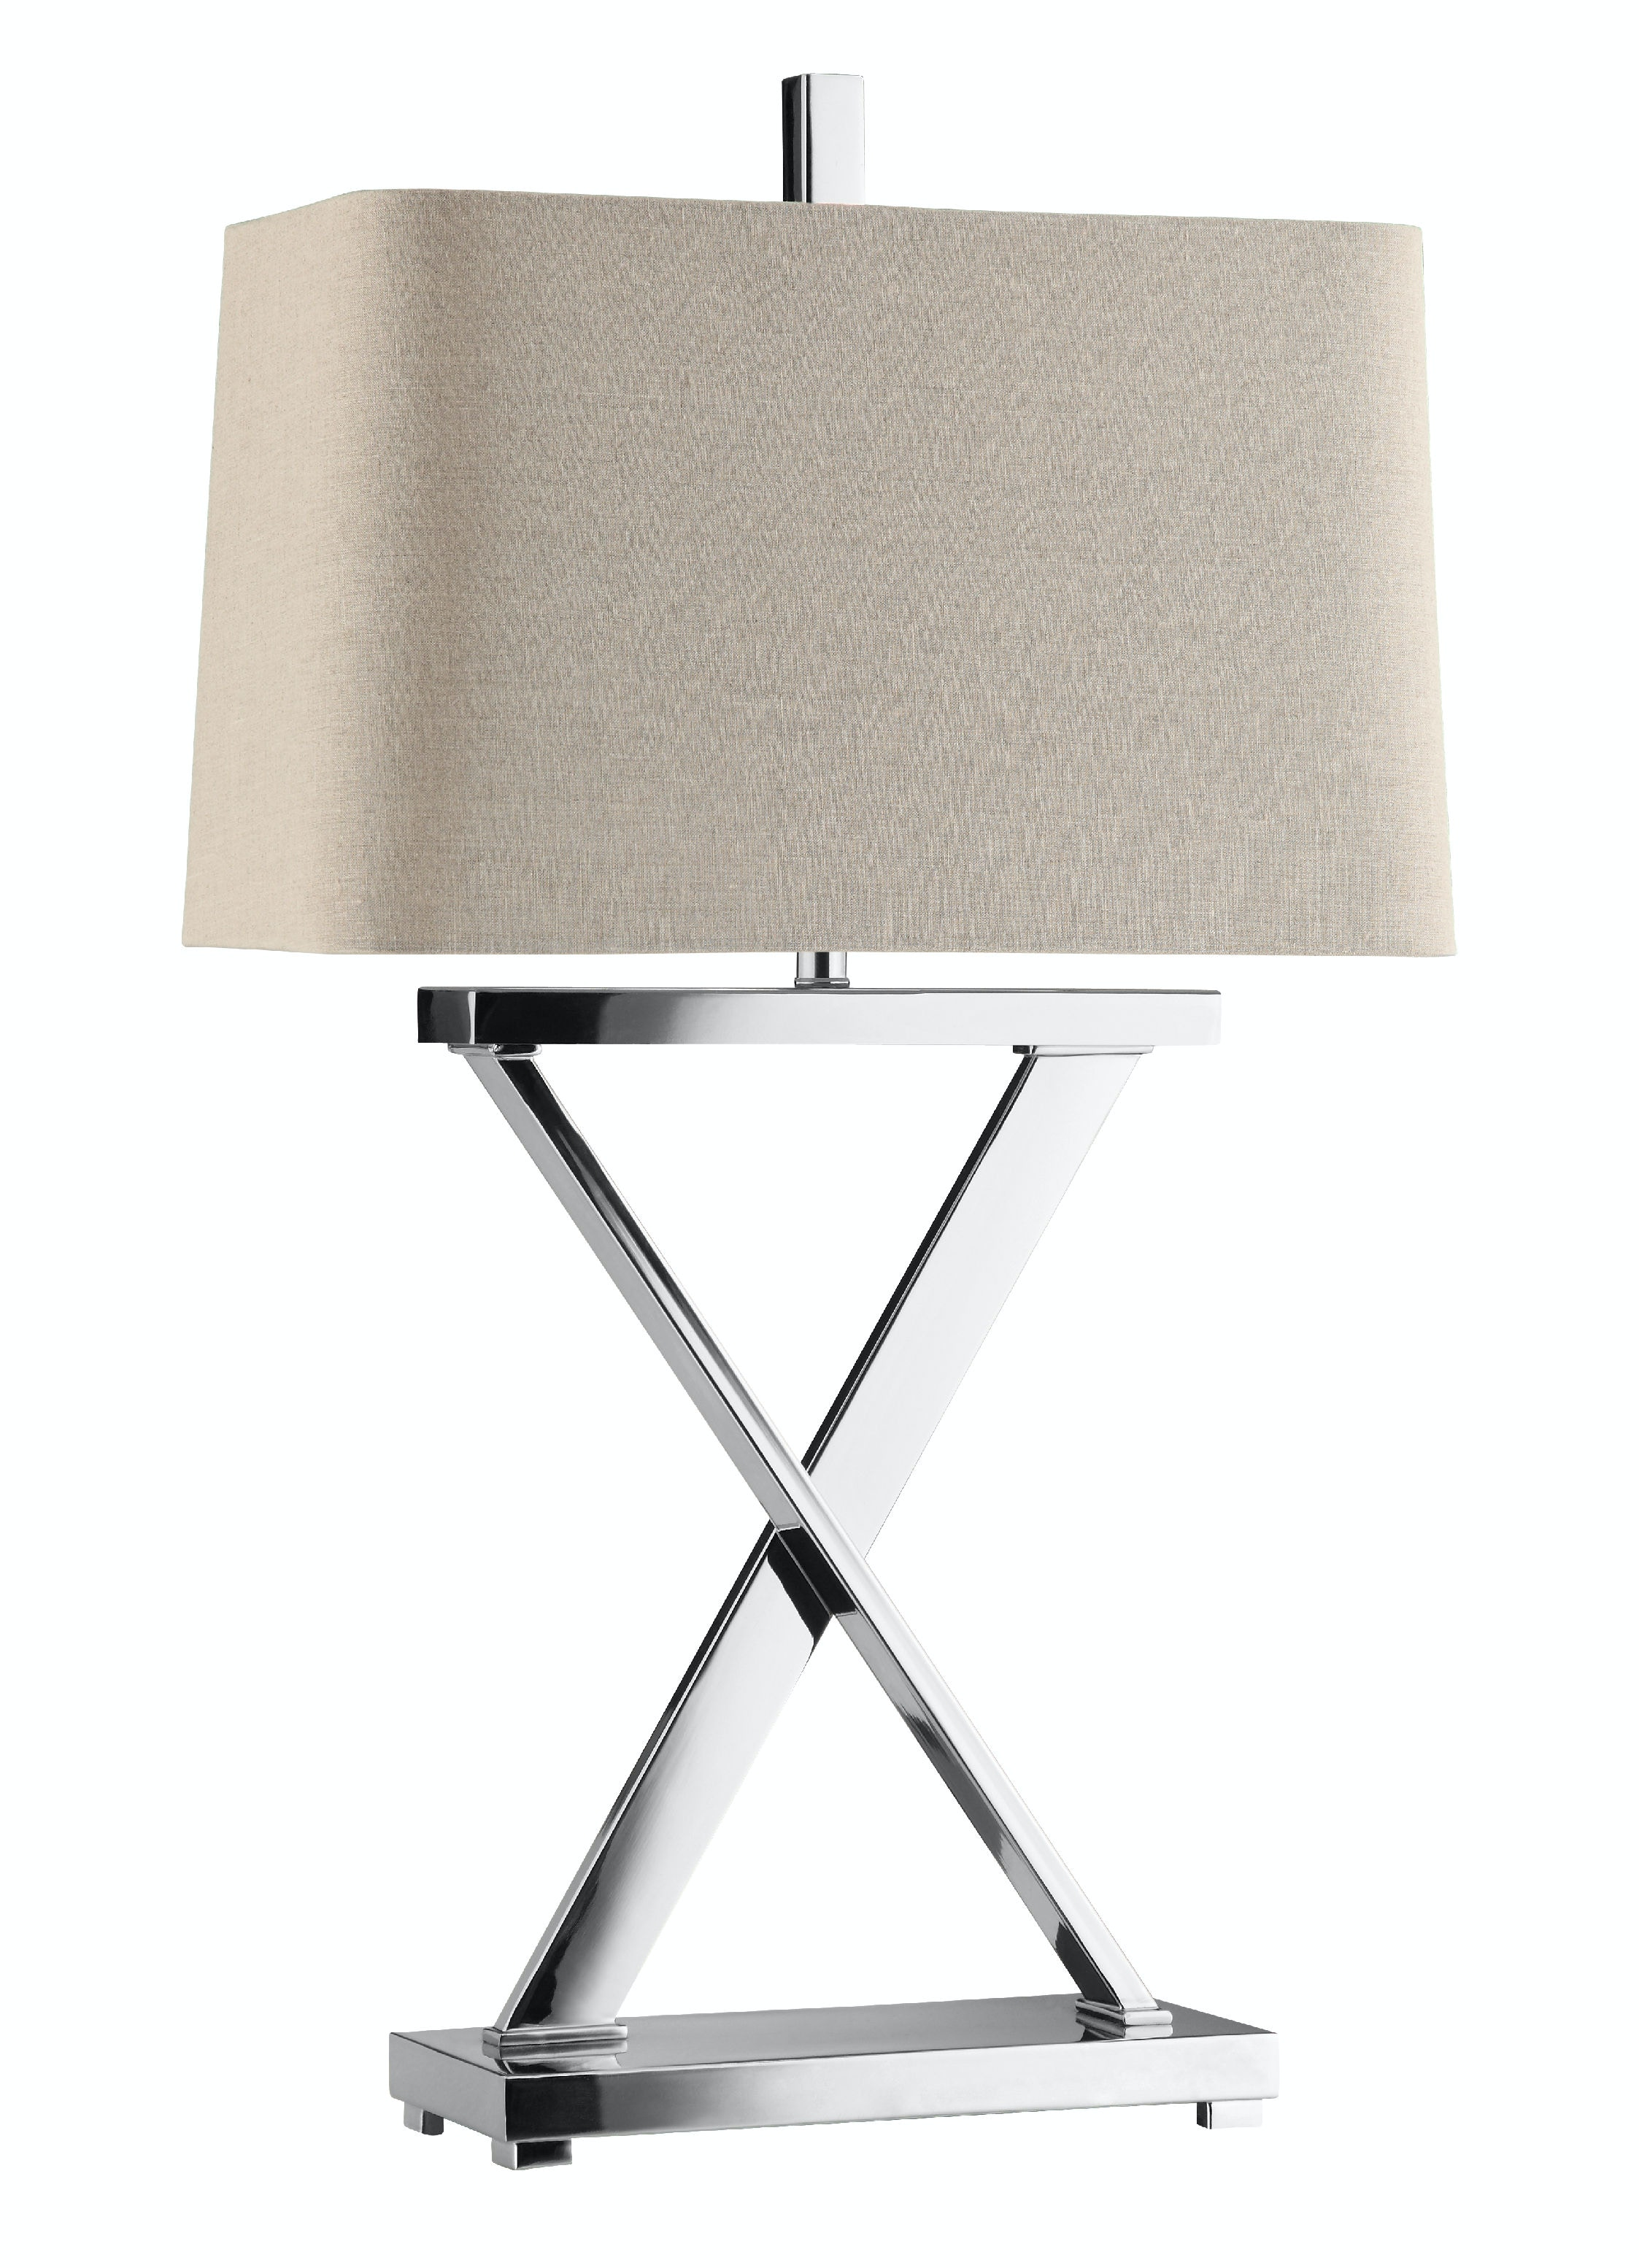 Stein World Max Table Lamp 90005